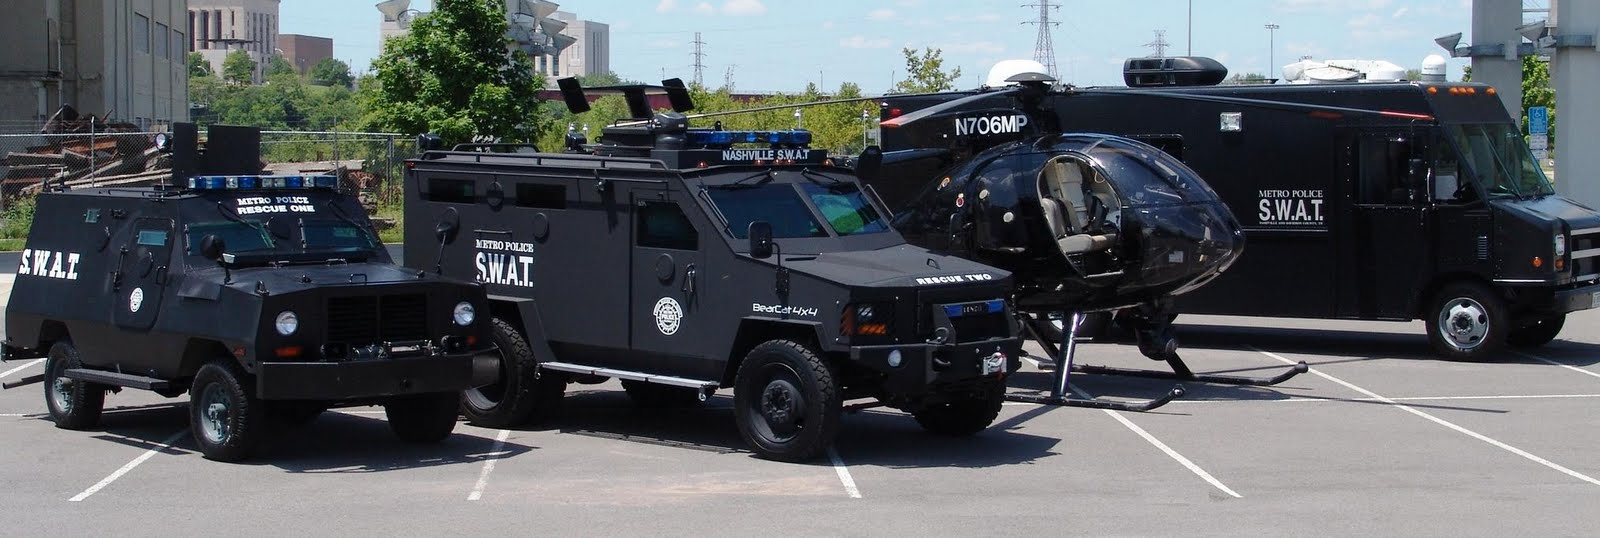 Vehicle Swat Police Car